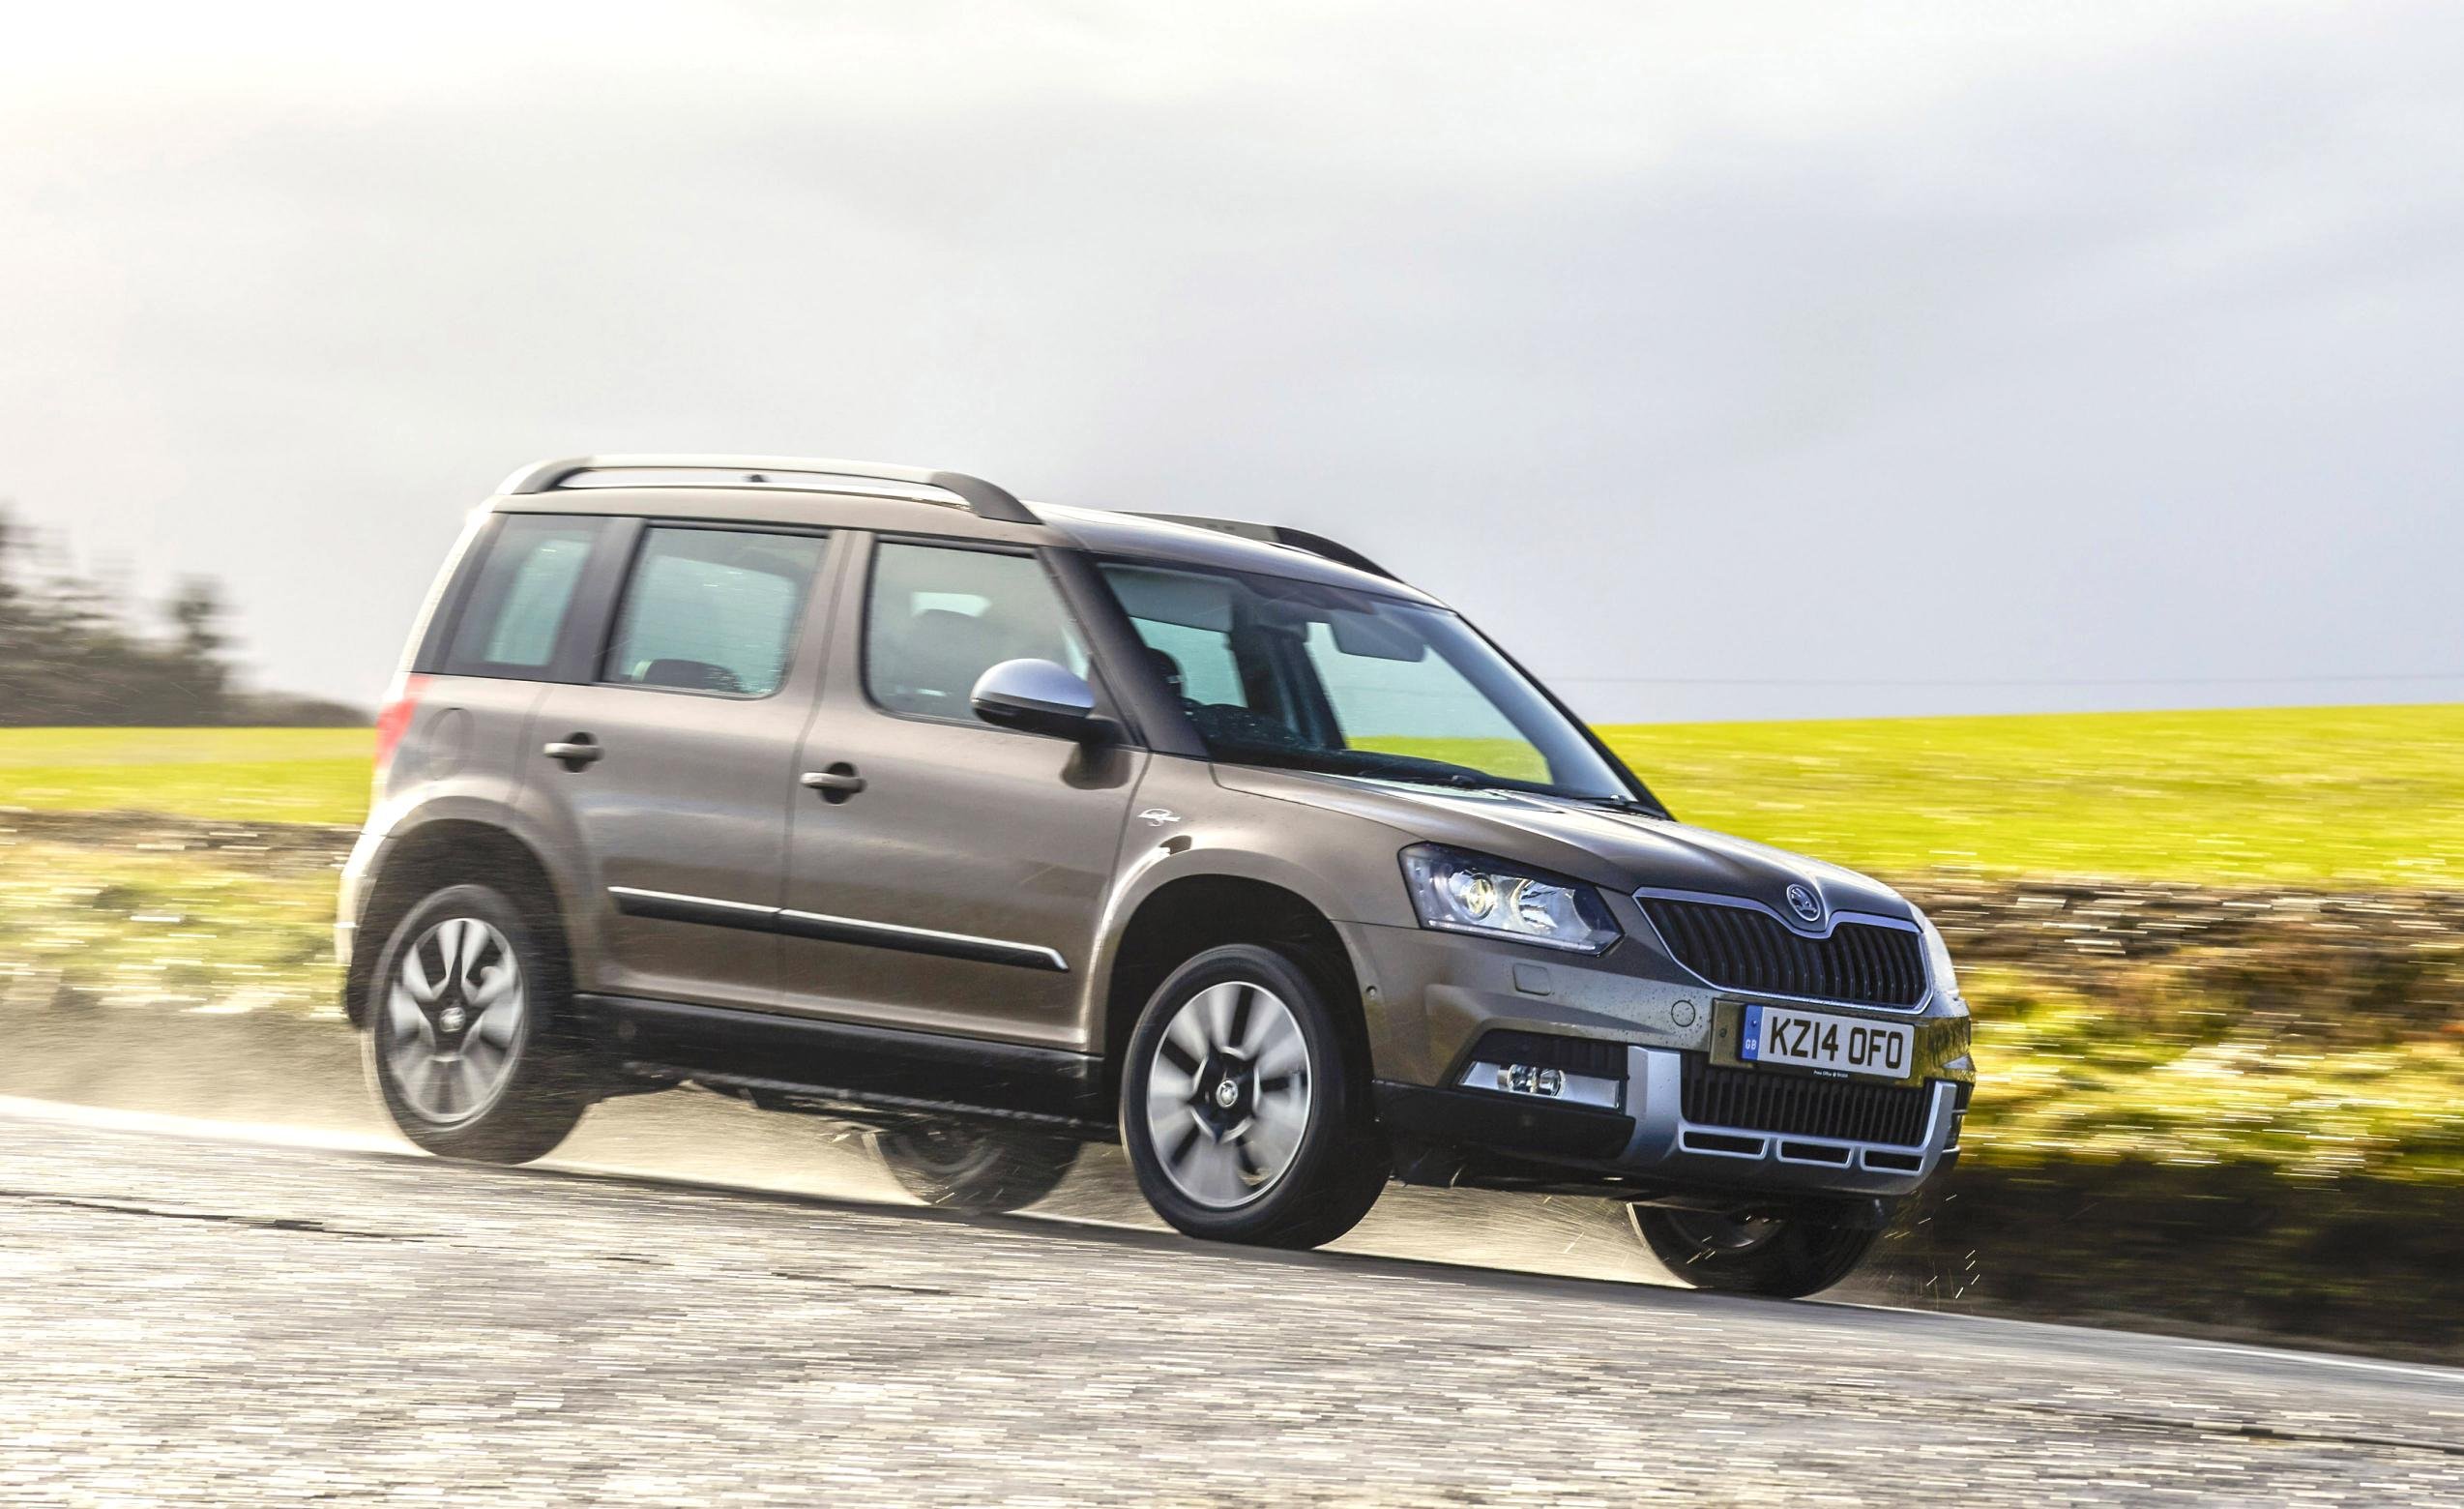 Skoda put substance ahead of style with its Yeti